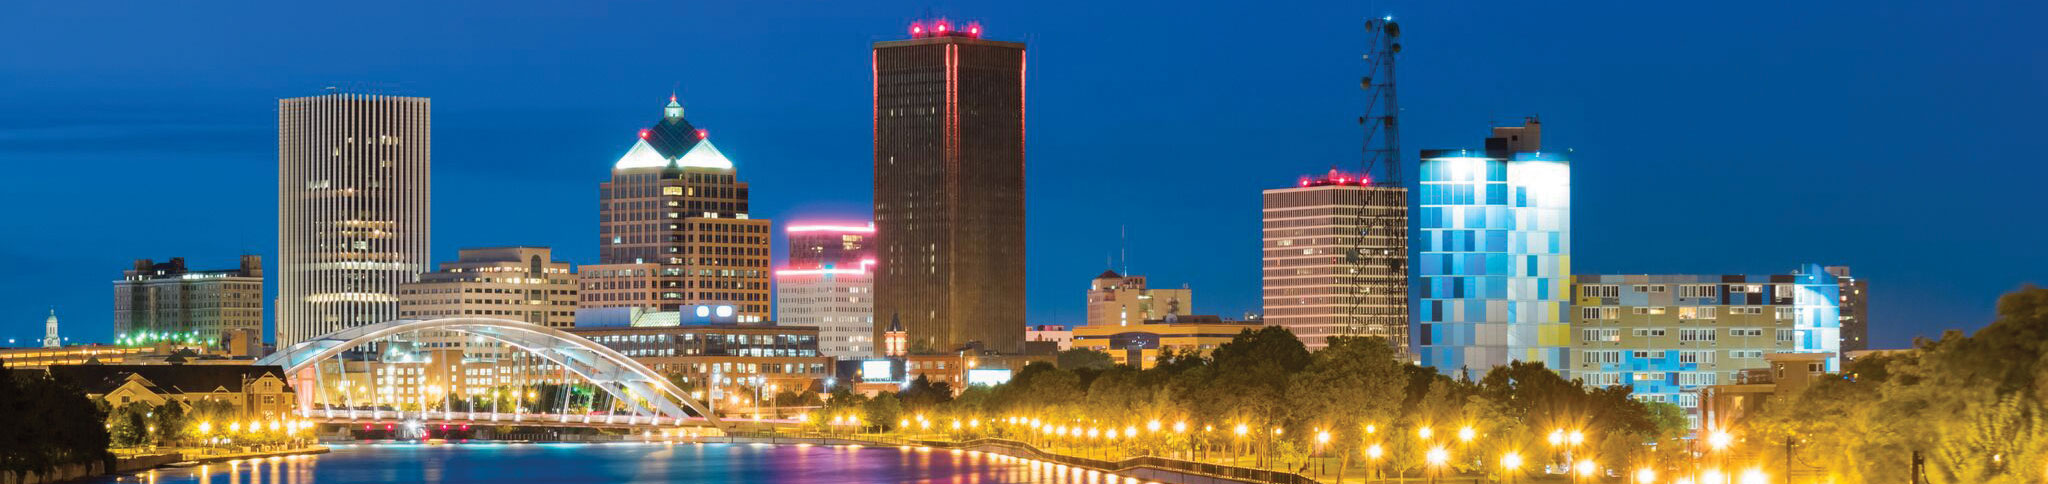 Rochester, NY skyline at dusk